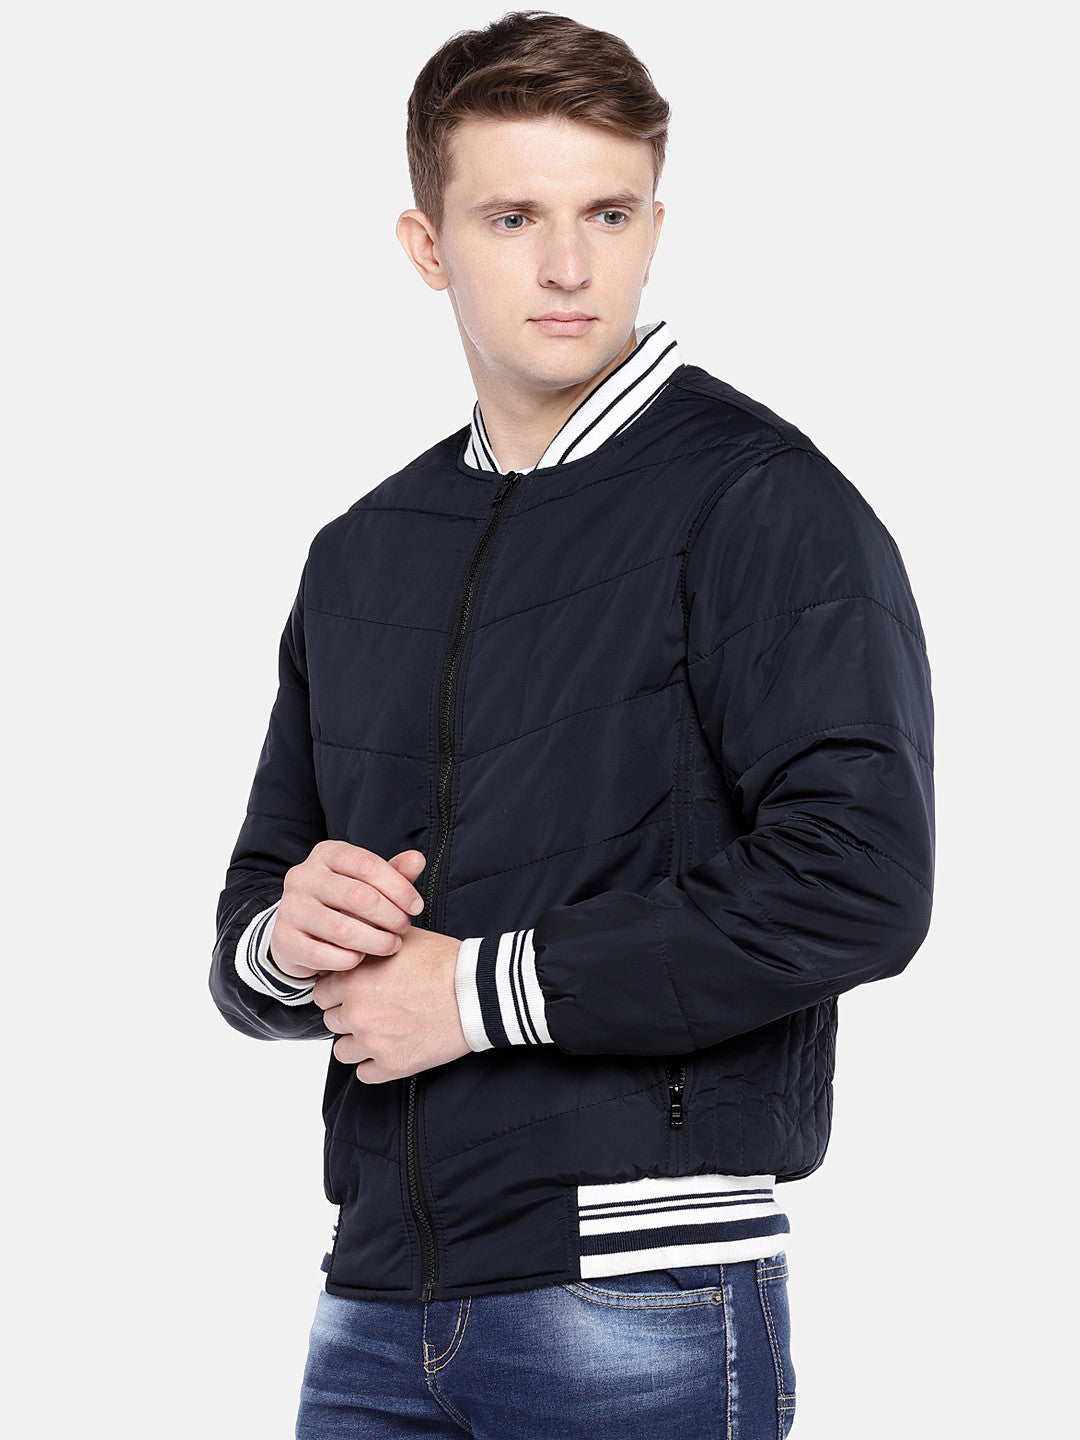 Navy Blue Solid Bomber-2